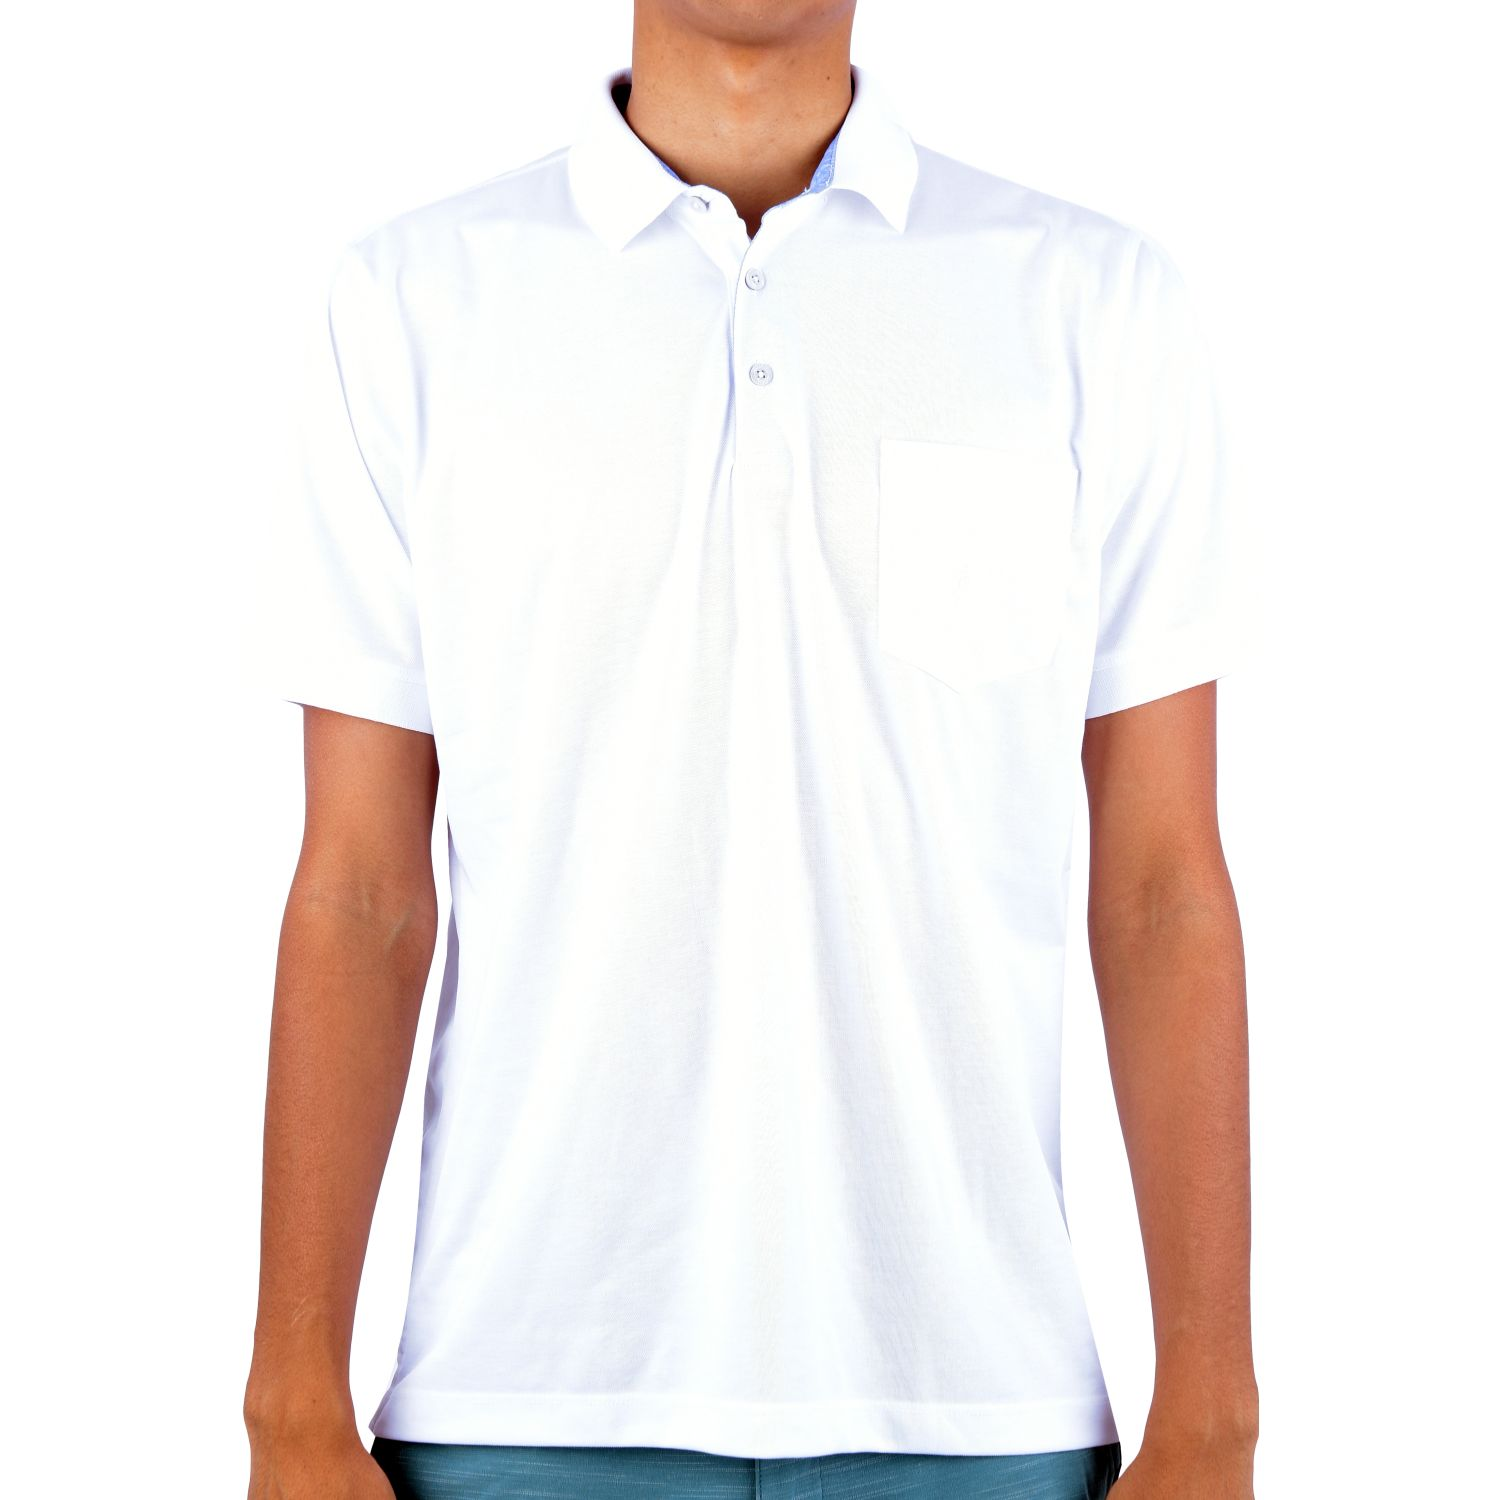 Ritzy Of Italy Polo Winter Oxford Color Entero Blanco Polos